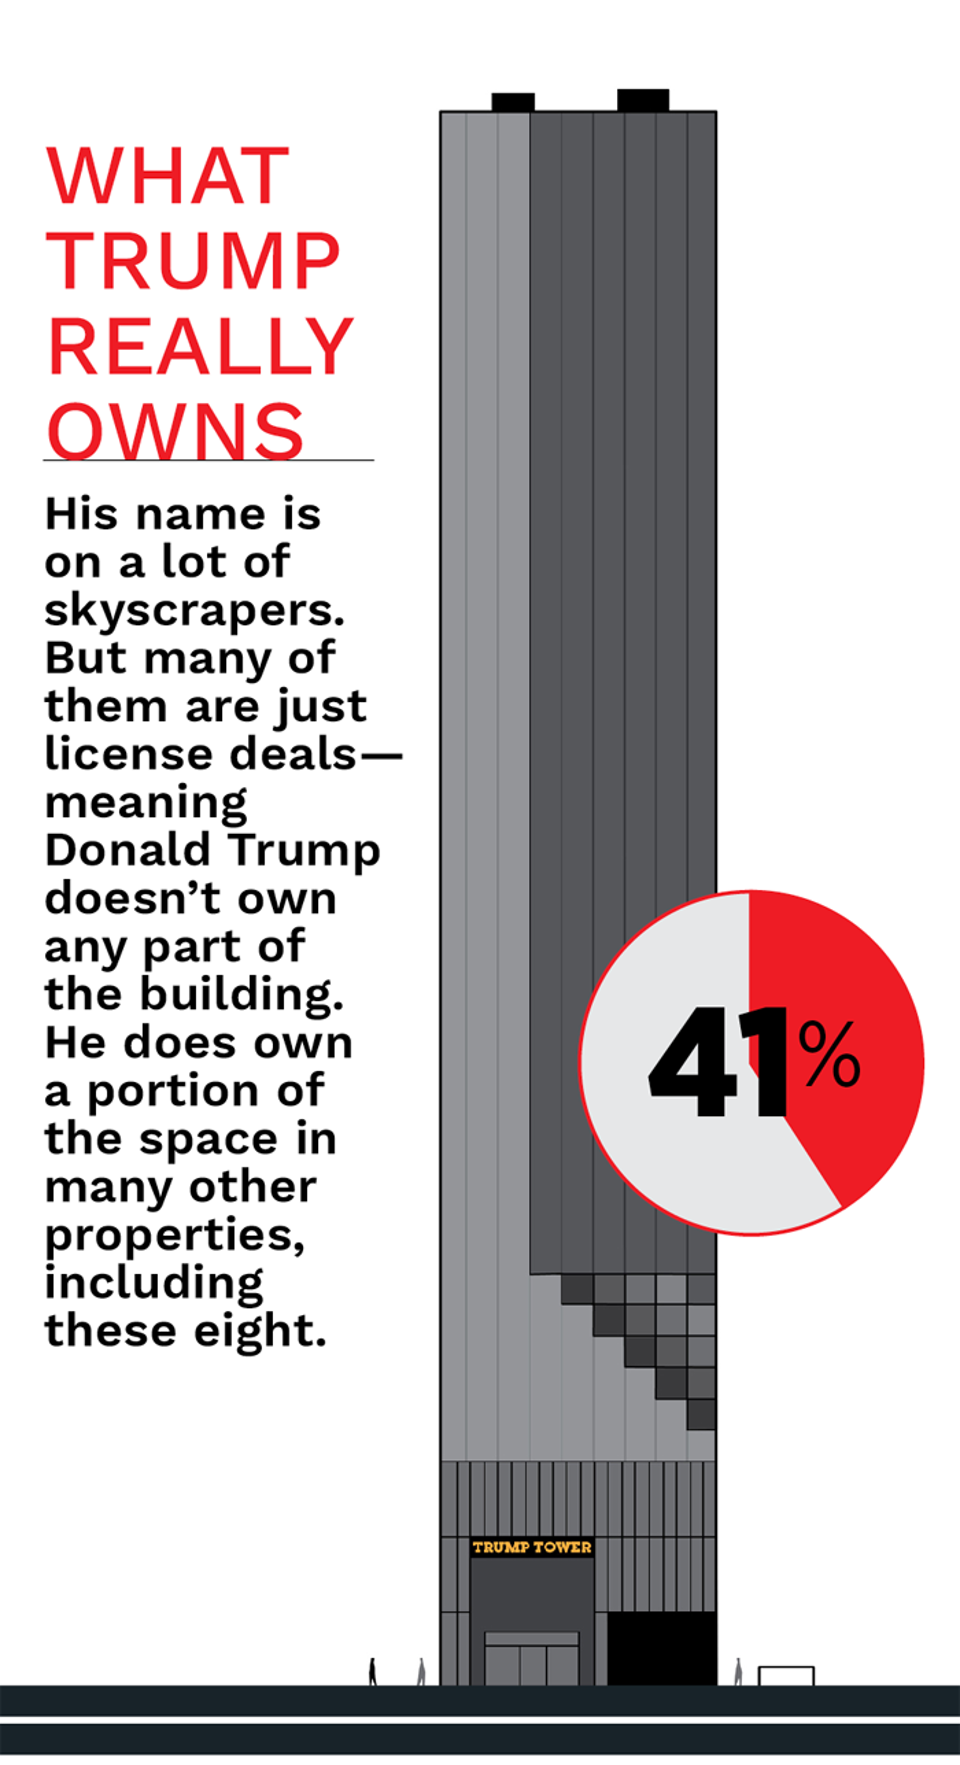 Trump Tower, NYC: The number in the pie chart is the percentage of the building's square footage owned by Trump, including office and retail space and his personal penthouse. For Trump Tower and the Trump hotels in Chicago and Las Vegas, the numbers